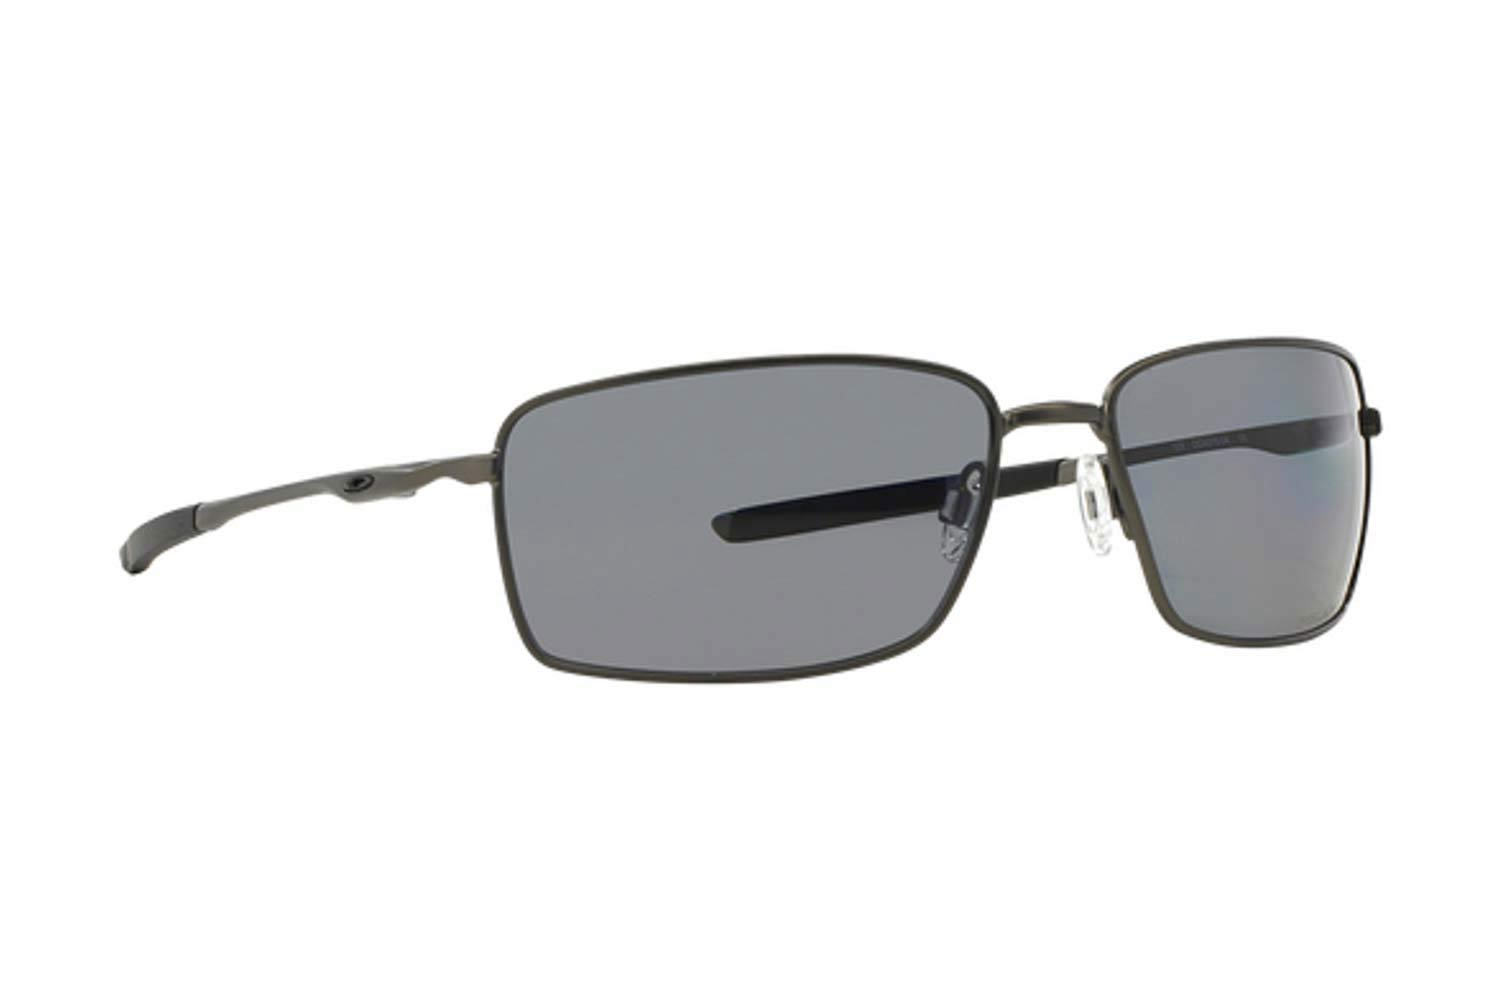 a57ca51bd9 SUNGLASSES Oakley Square Wire 4075 04 Grey Polarized